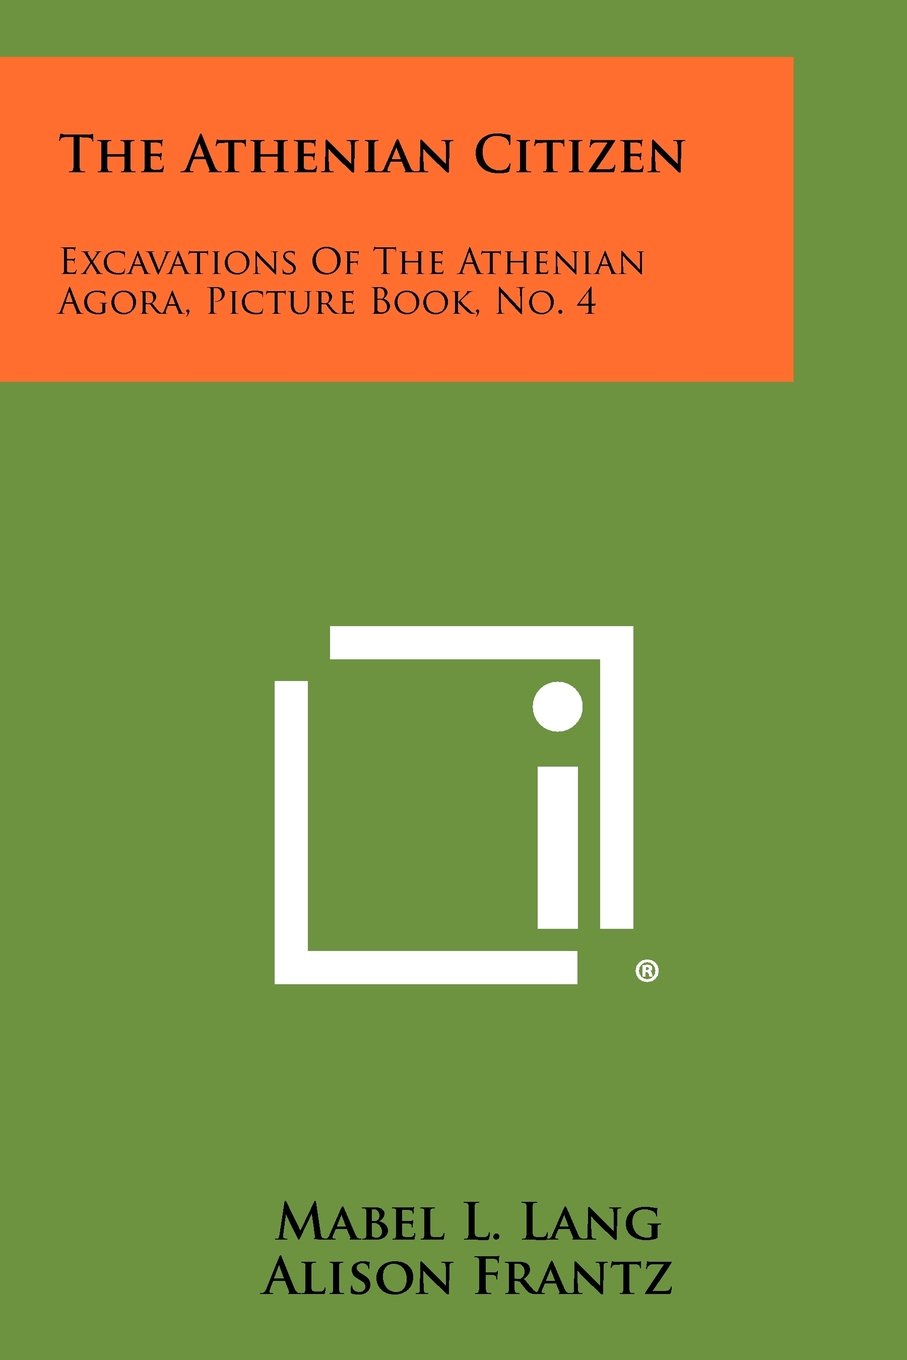 The Athenian Citrizen (Excavations of the Atenian Agora Picture Book, No. 4)